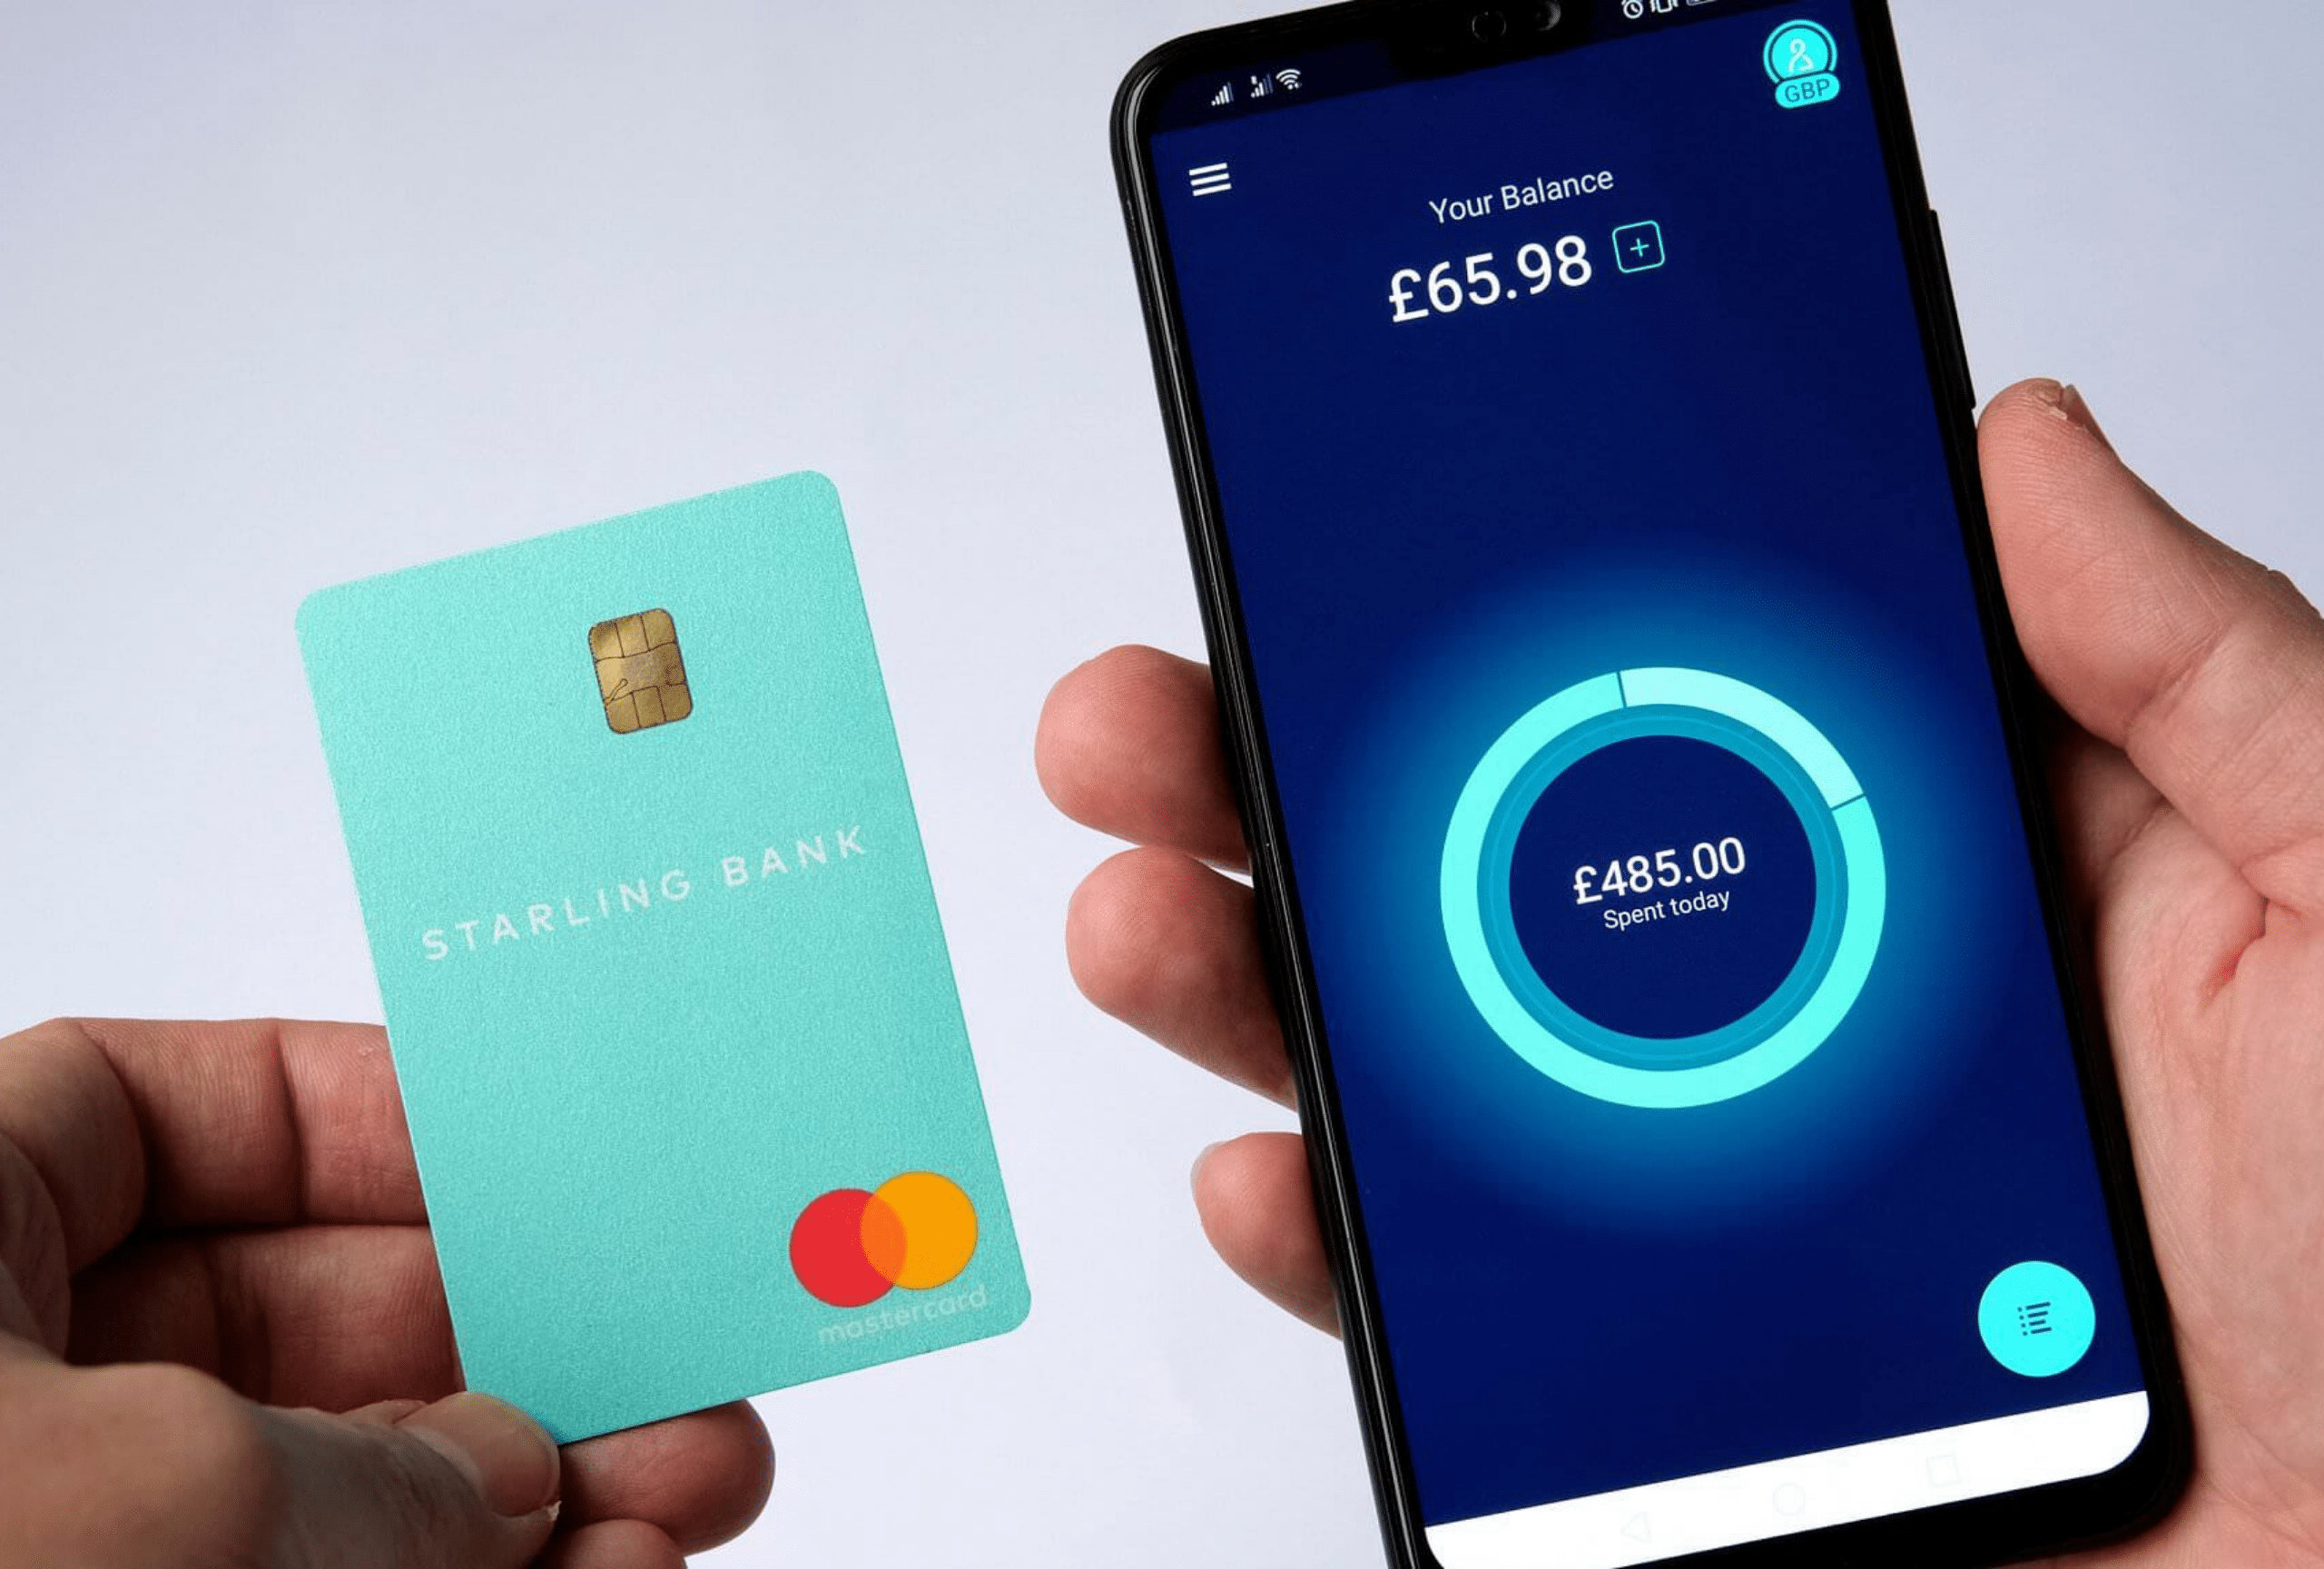 Starling Bank Review (May 2021): Is It Really The Best?